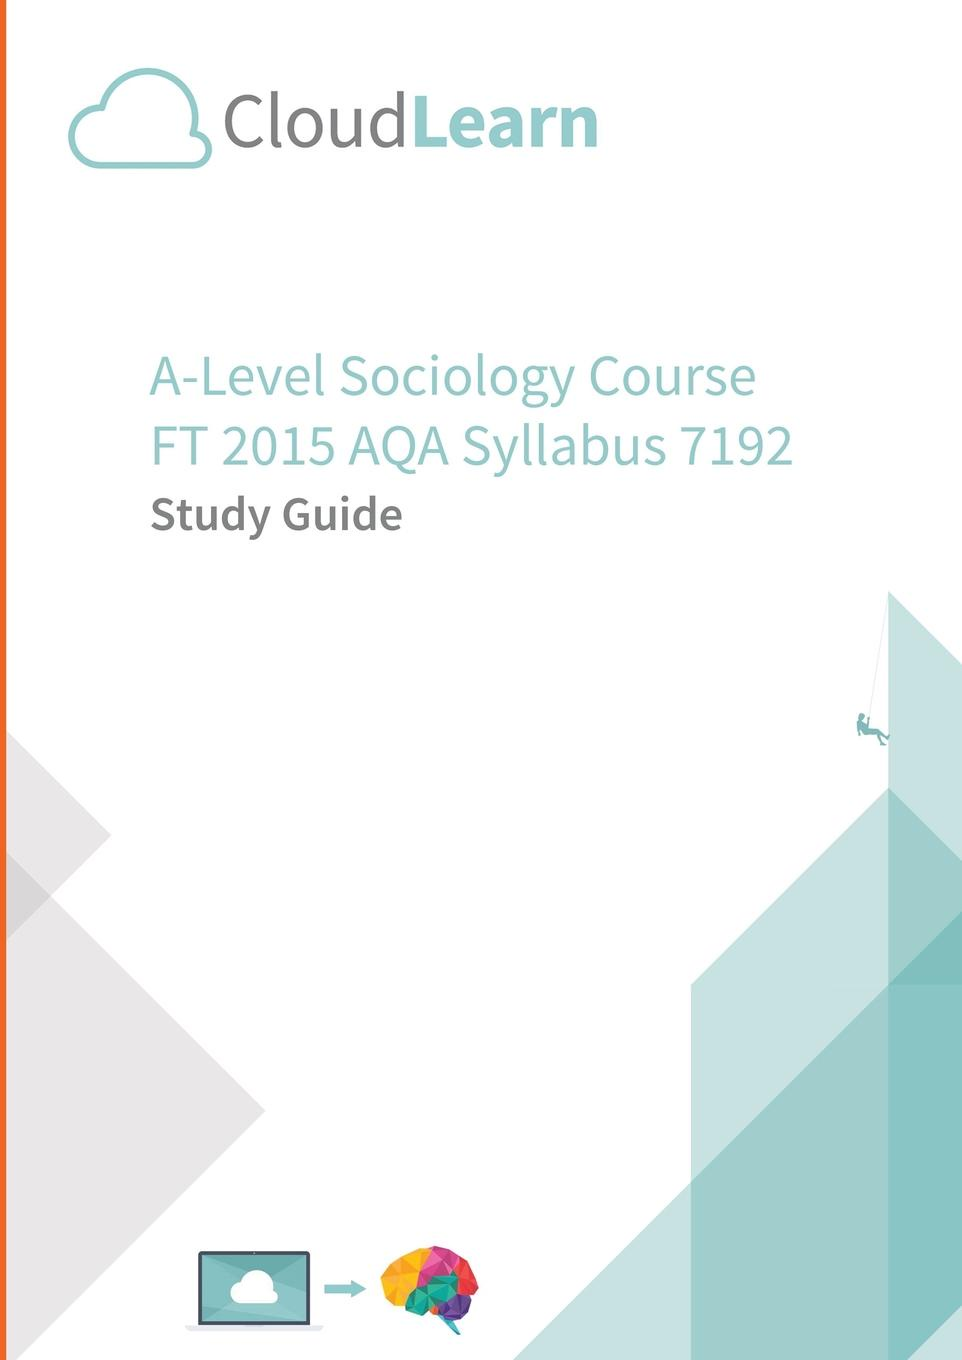 CloudLearn Ltd CL2.0 CloudLearn A-Level FT 2015 Sociology 7192 все цены